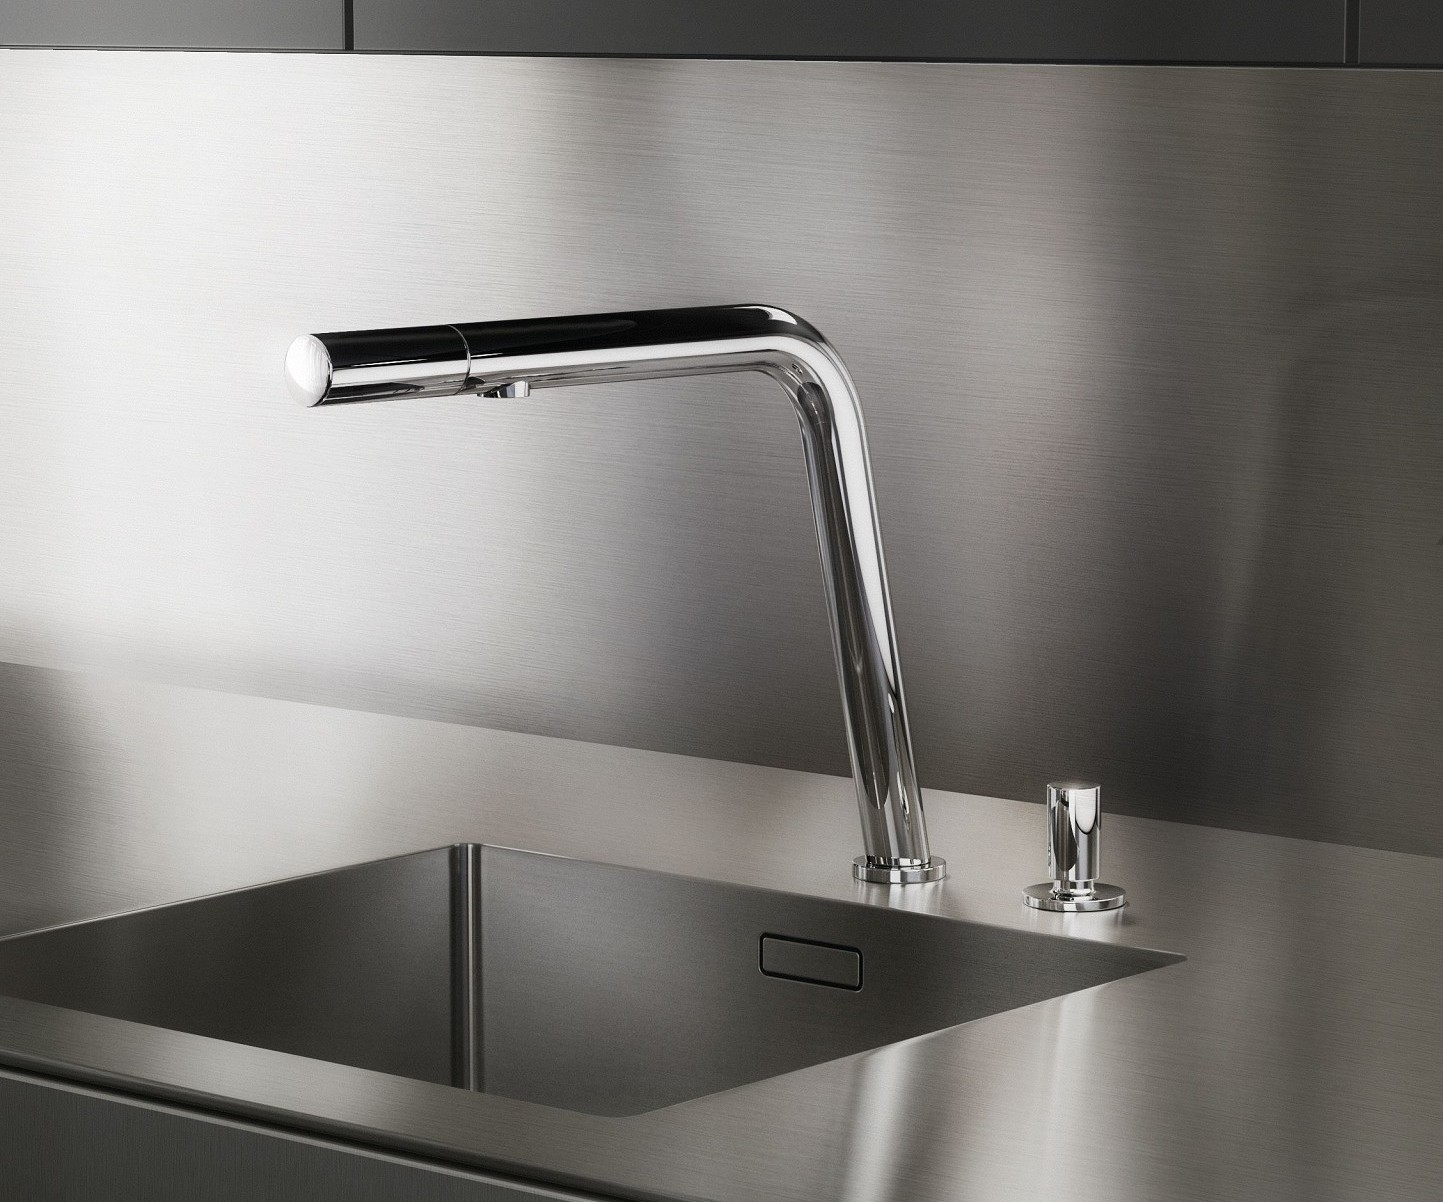 SieMatic Pure SE base cabinets in stainless steel with SieMatic-exclusive faucet with intelligent controls in the faucet head